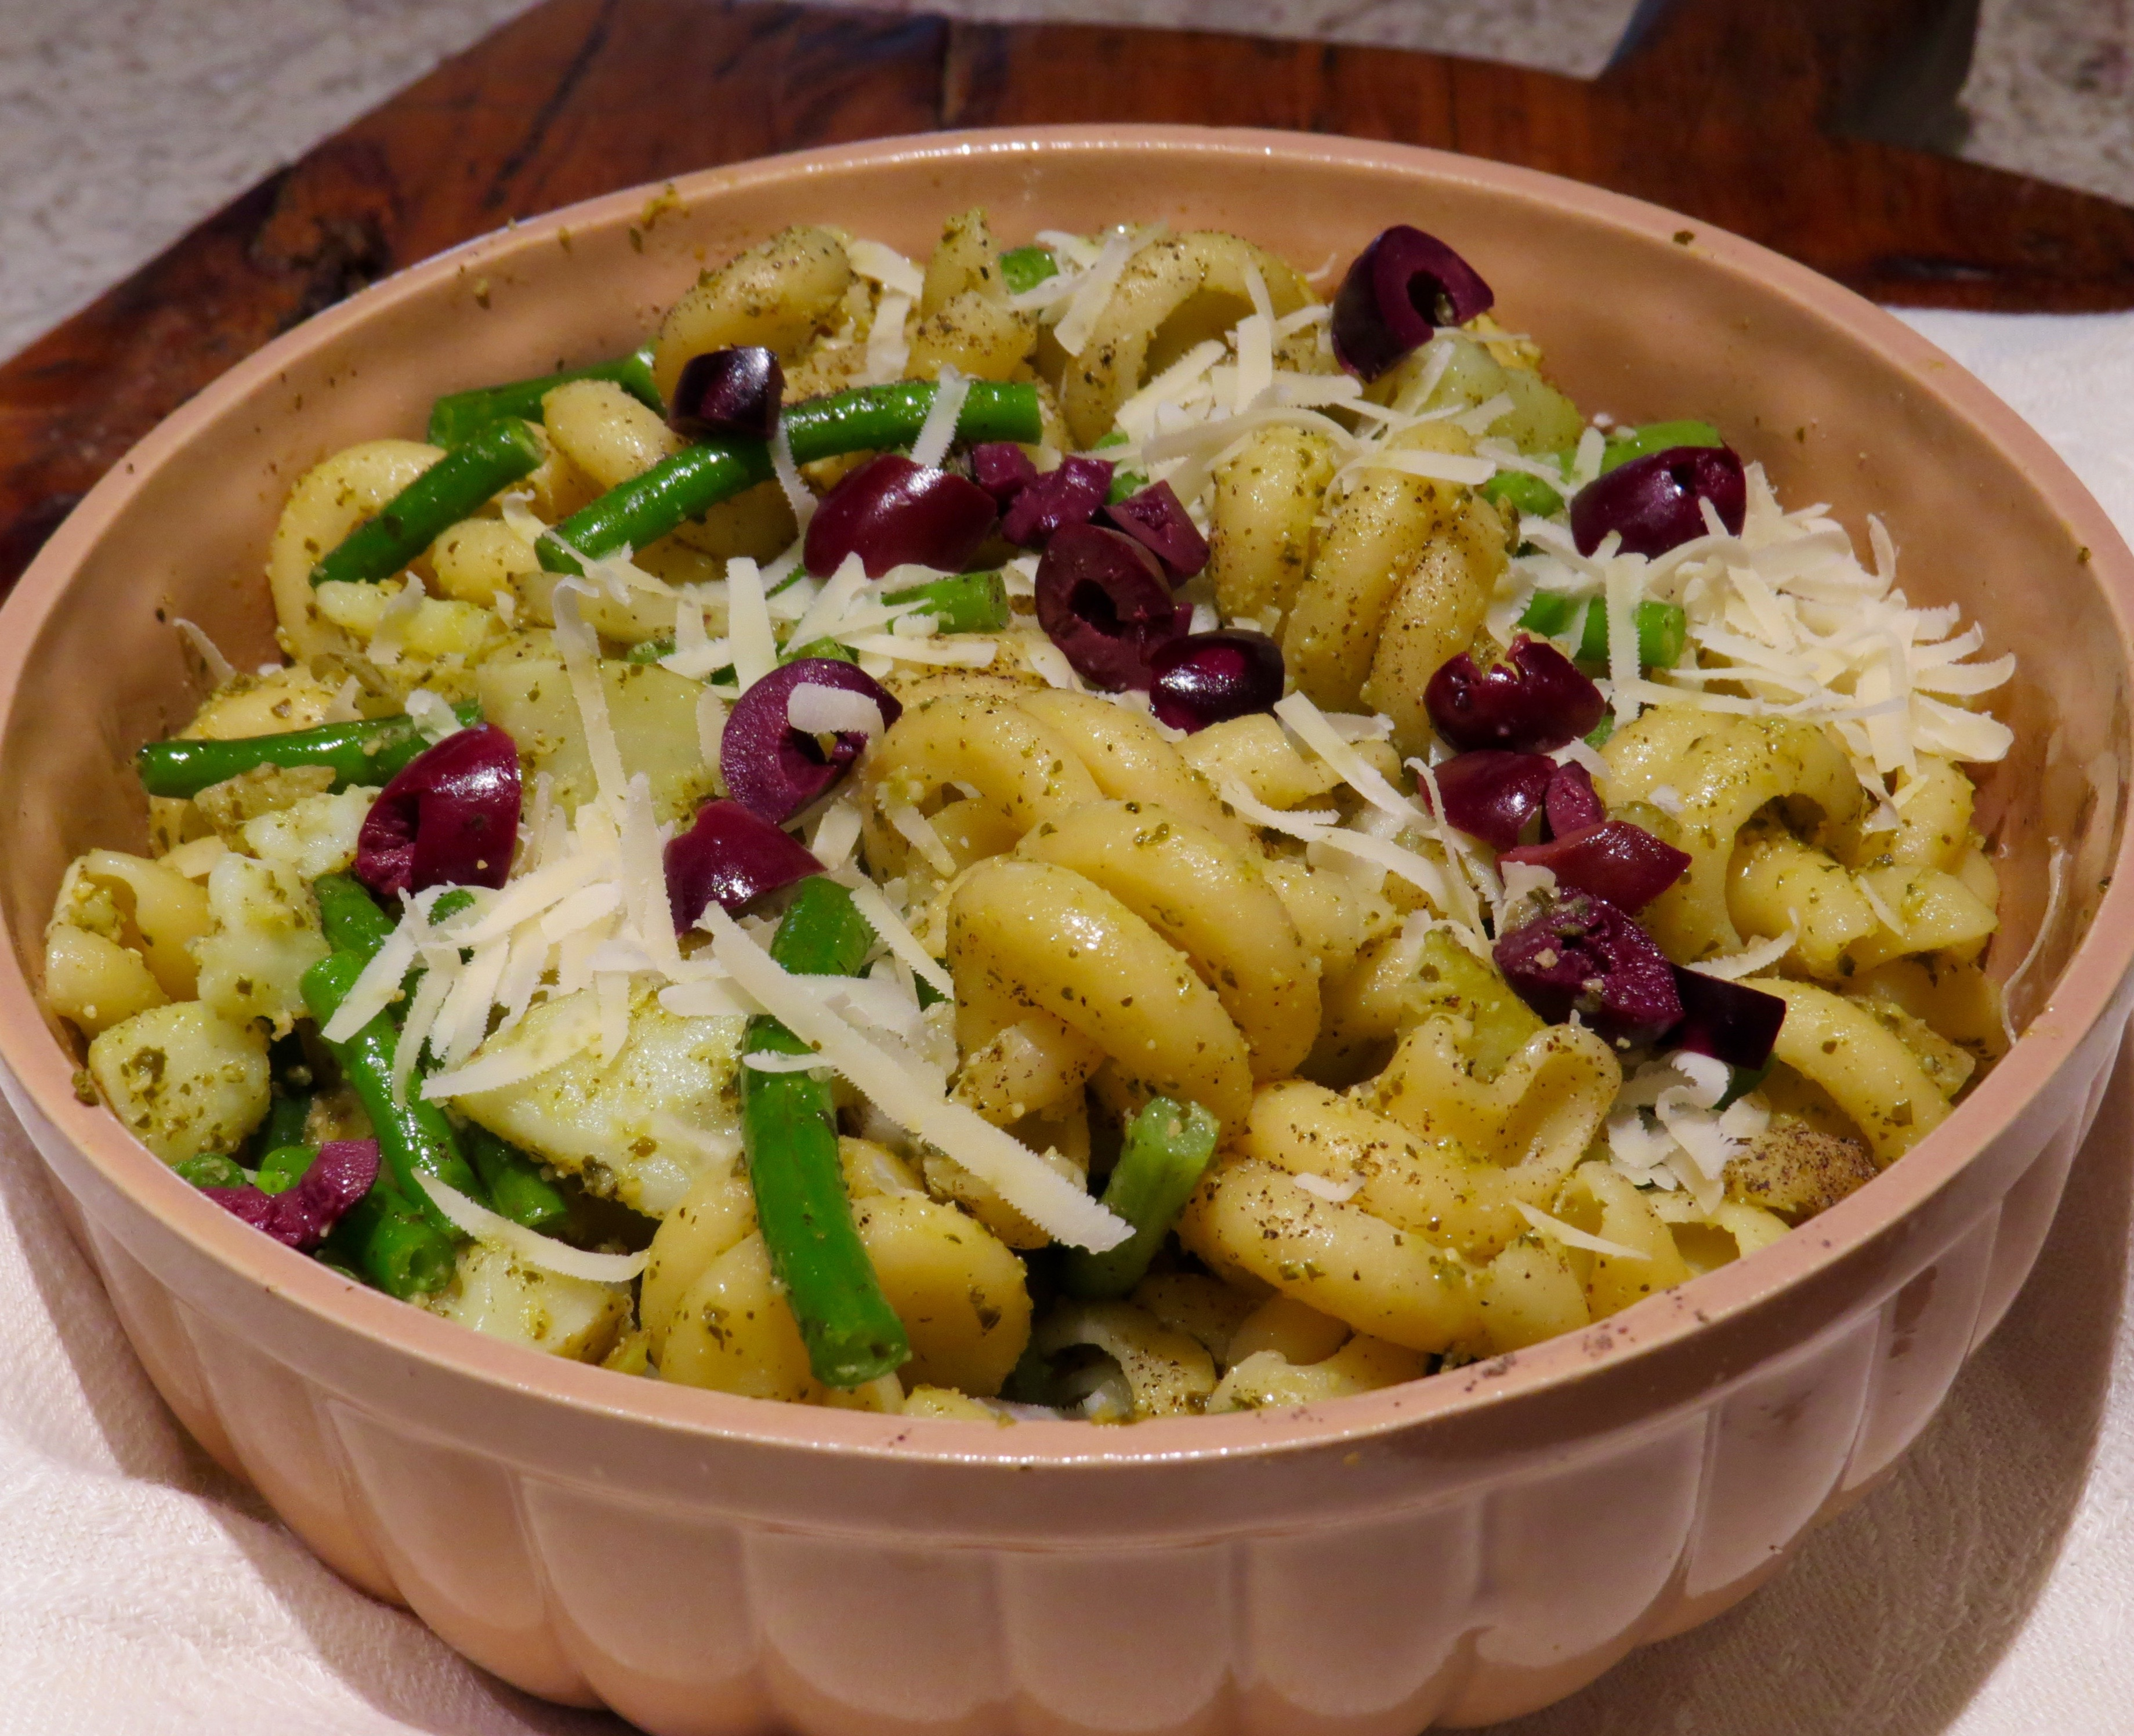 Pasta with new potatoes, green beans, and pesto, served steaming hot or room temperature.